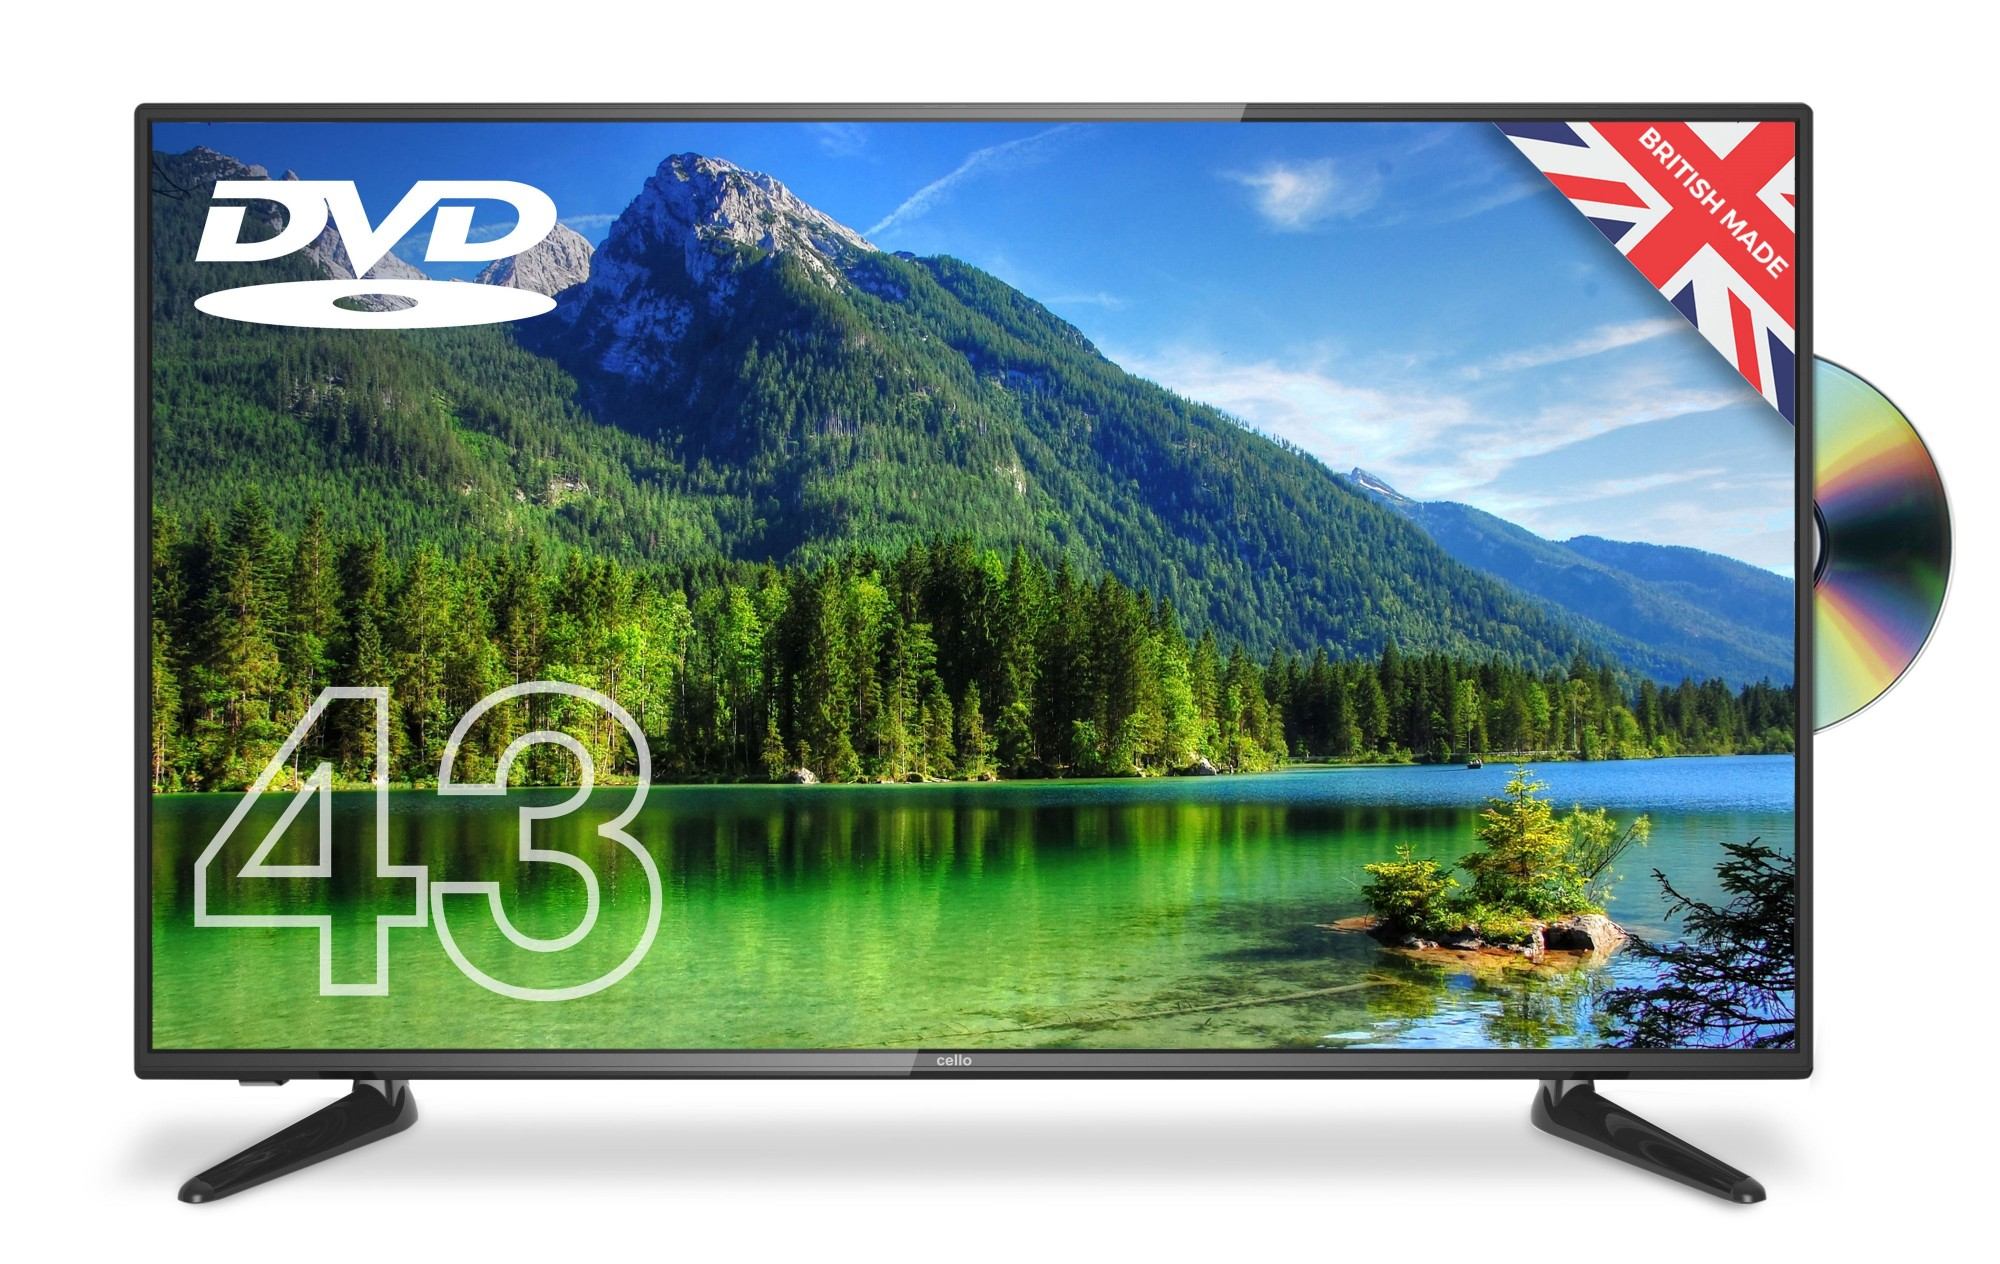 43IN LED 1920X1080 FULL HD 8MS 16:9 4000:1 3HDMI 1USB 1VGA      IN